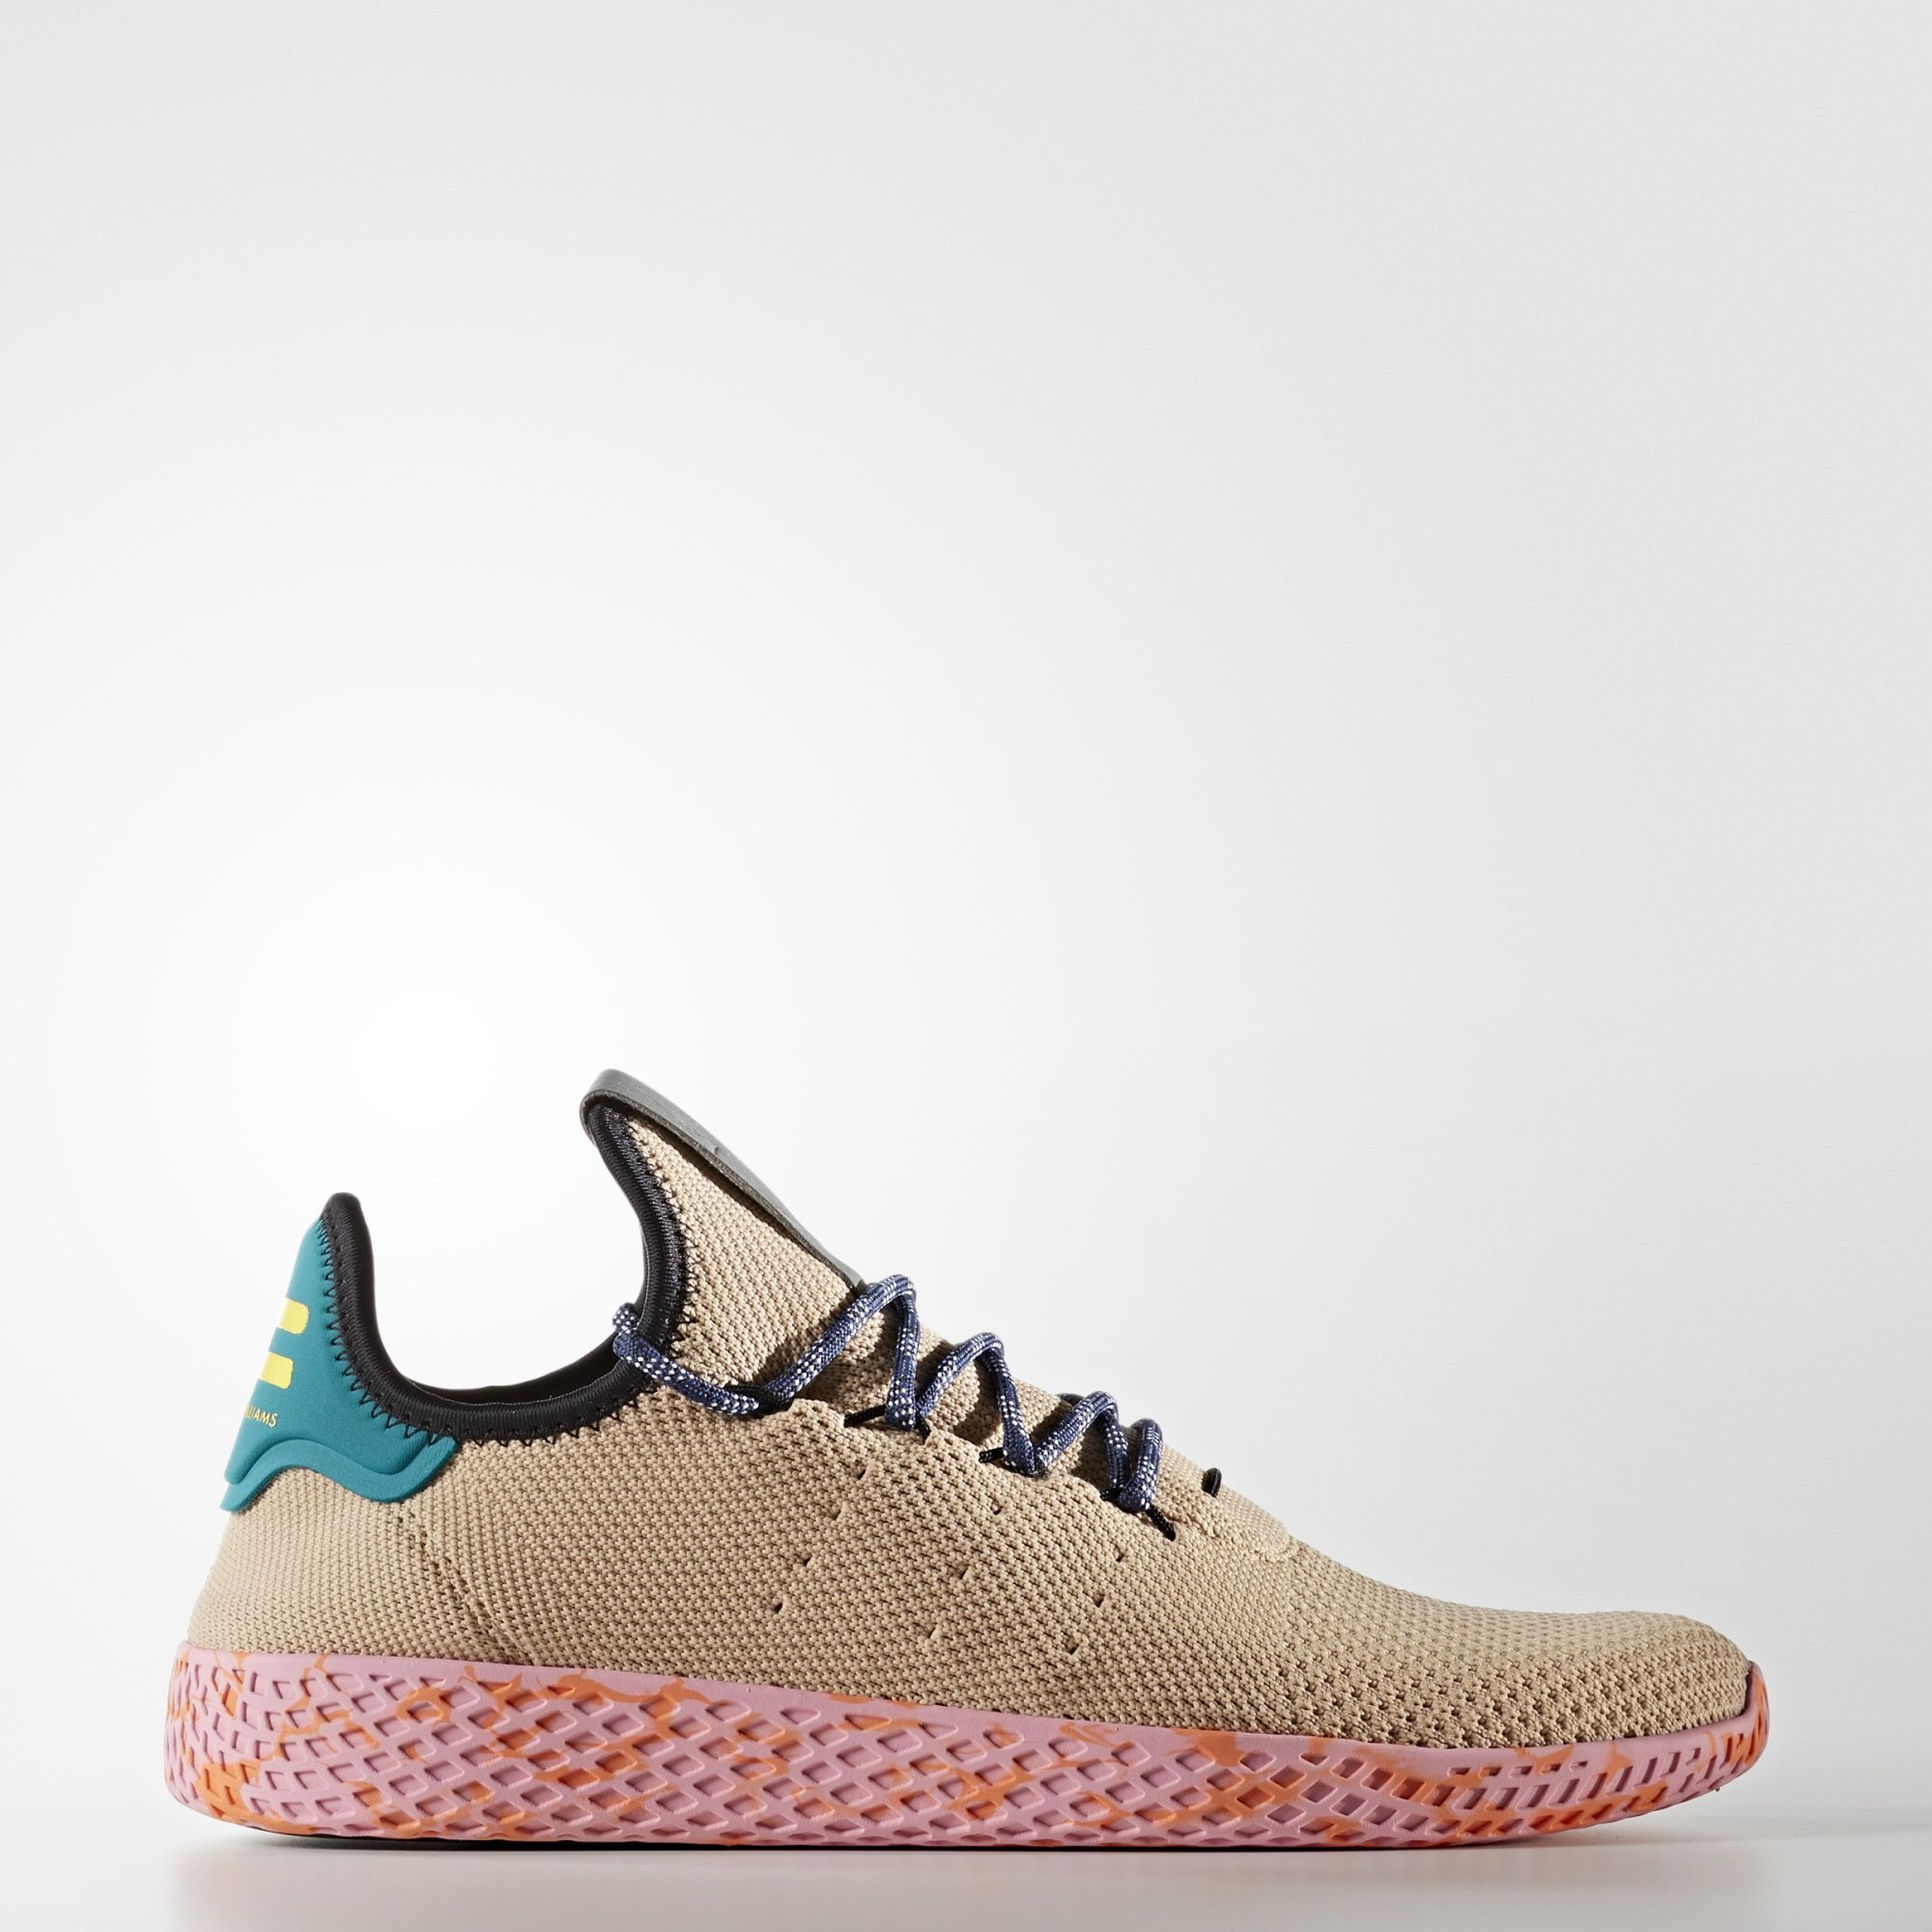 c2d249d15a0 adidas - Pharrell Williams Tennis Hu Schoenen